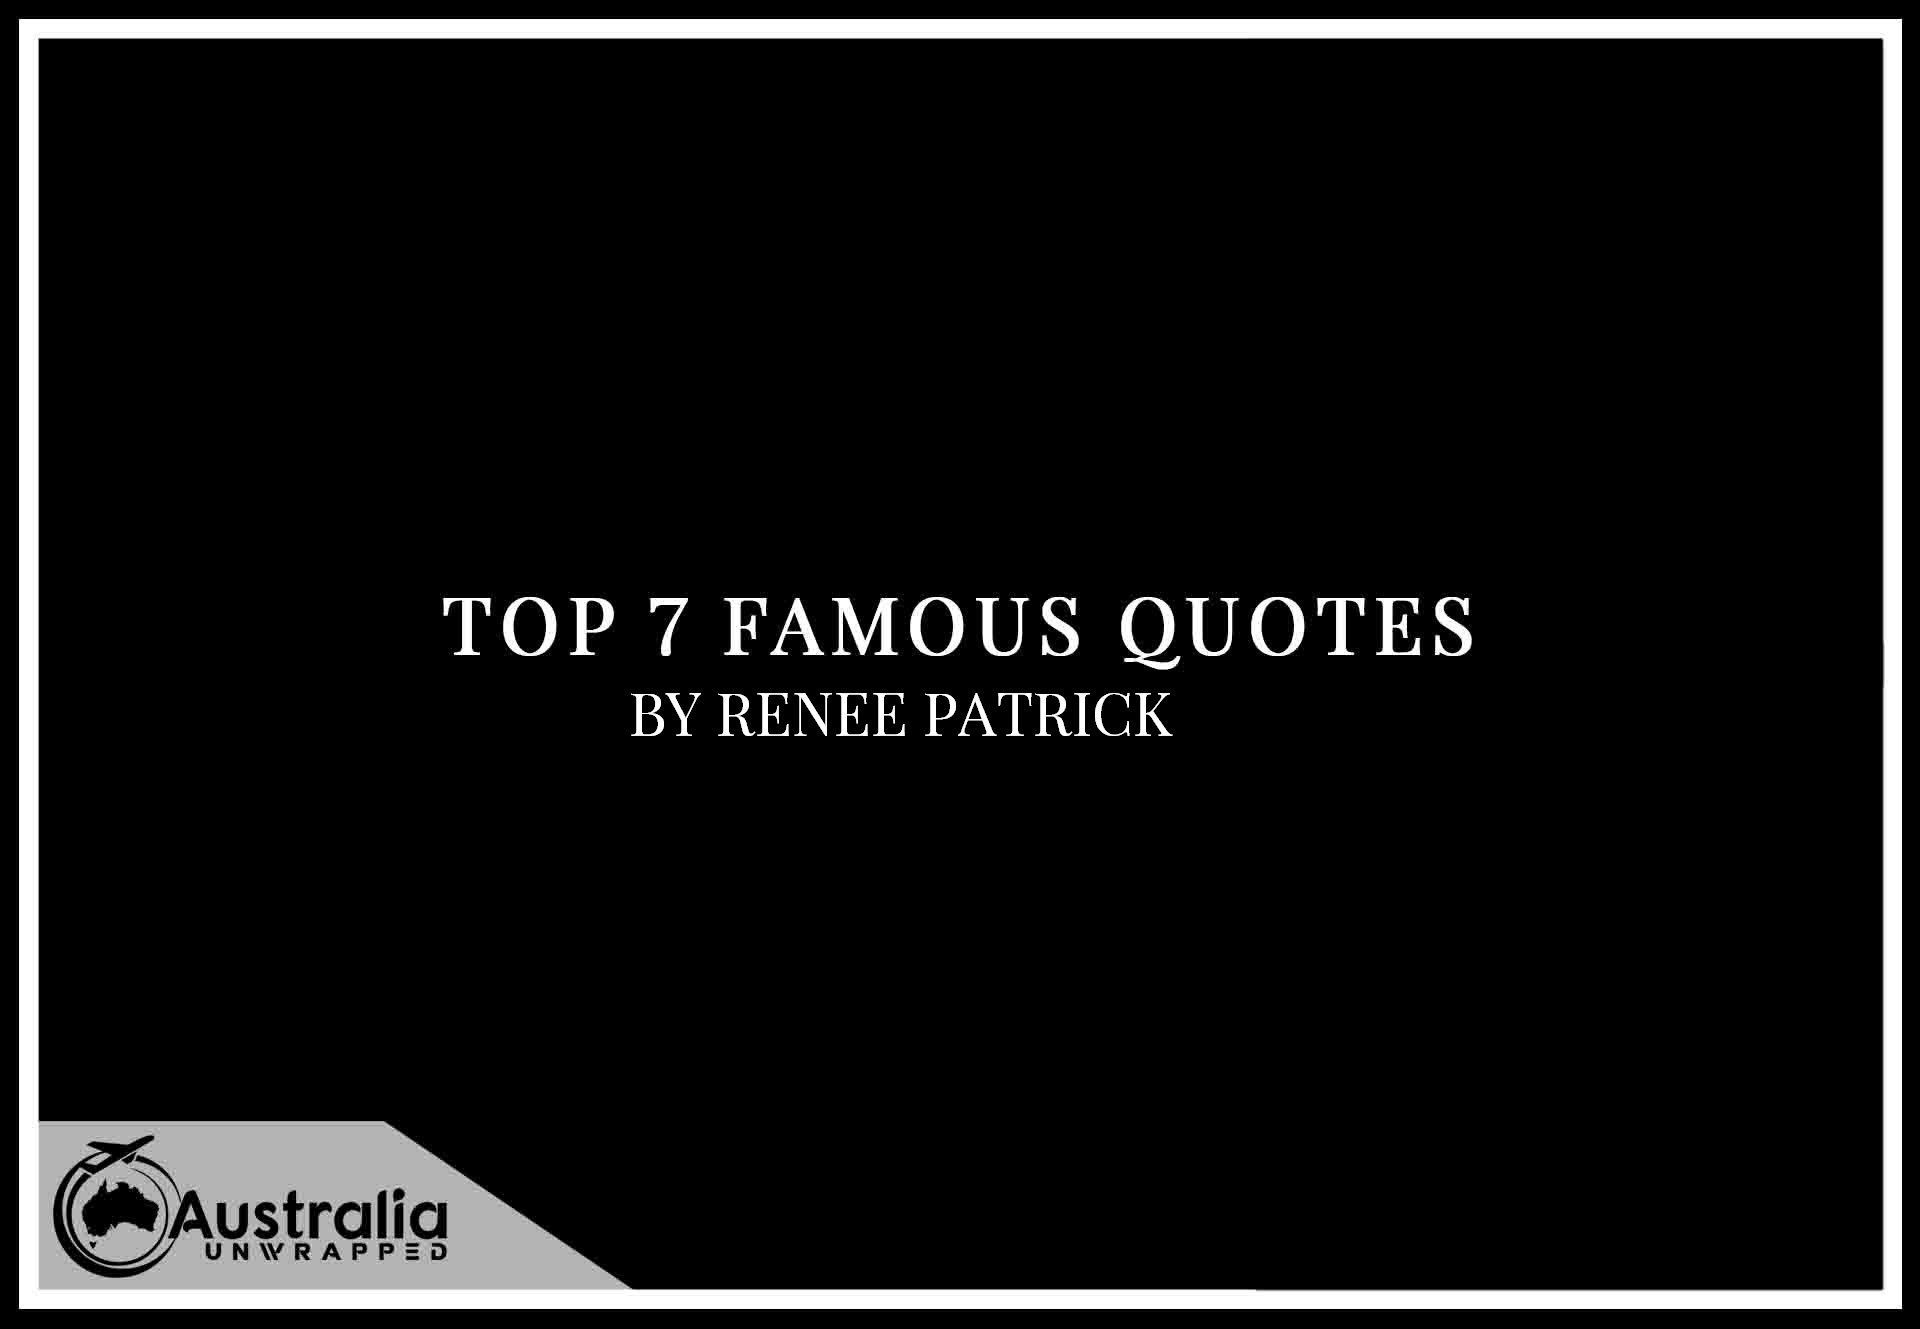 Top 7 Famous Quotes by Author Renee Patrick